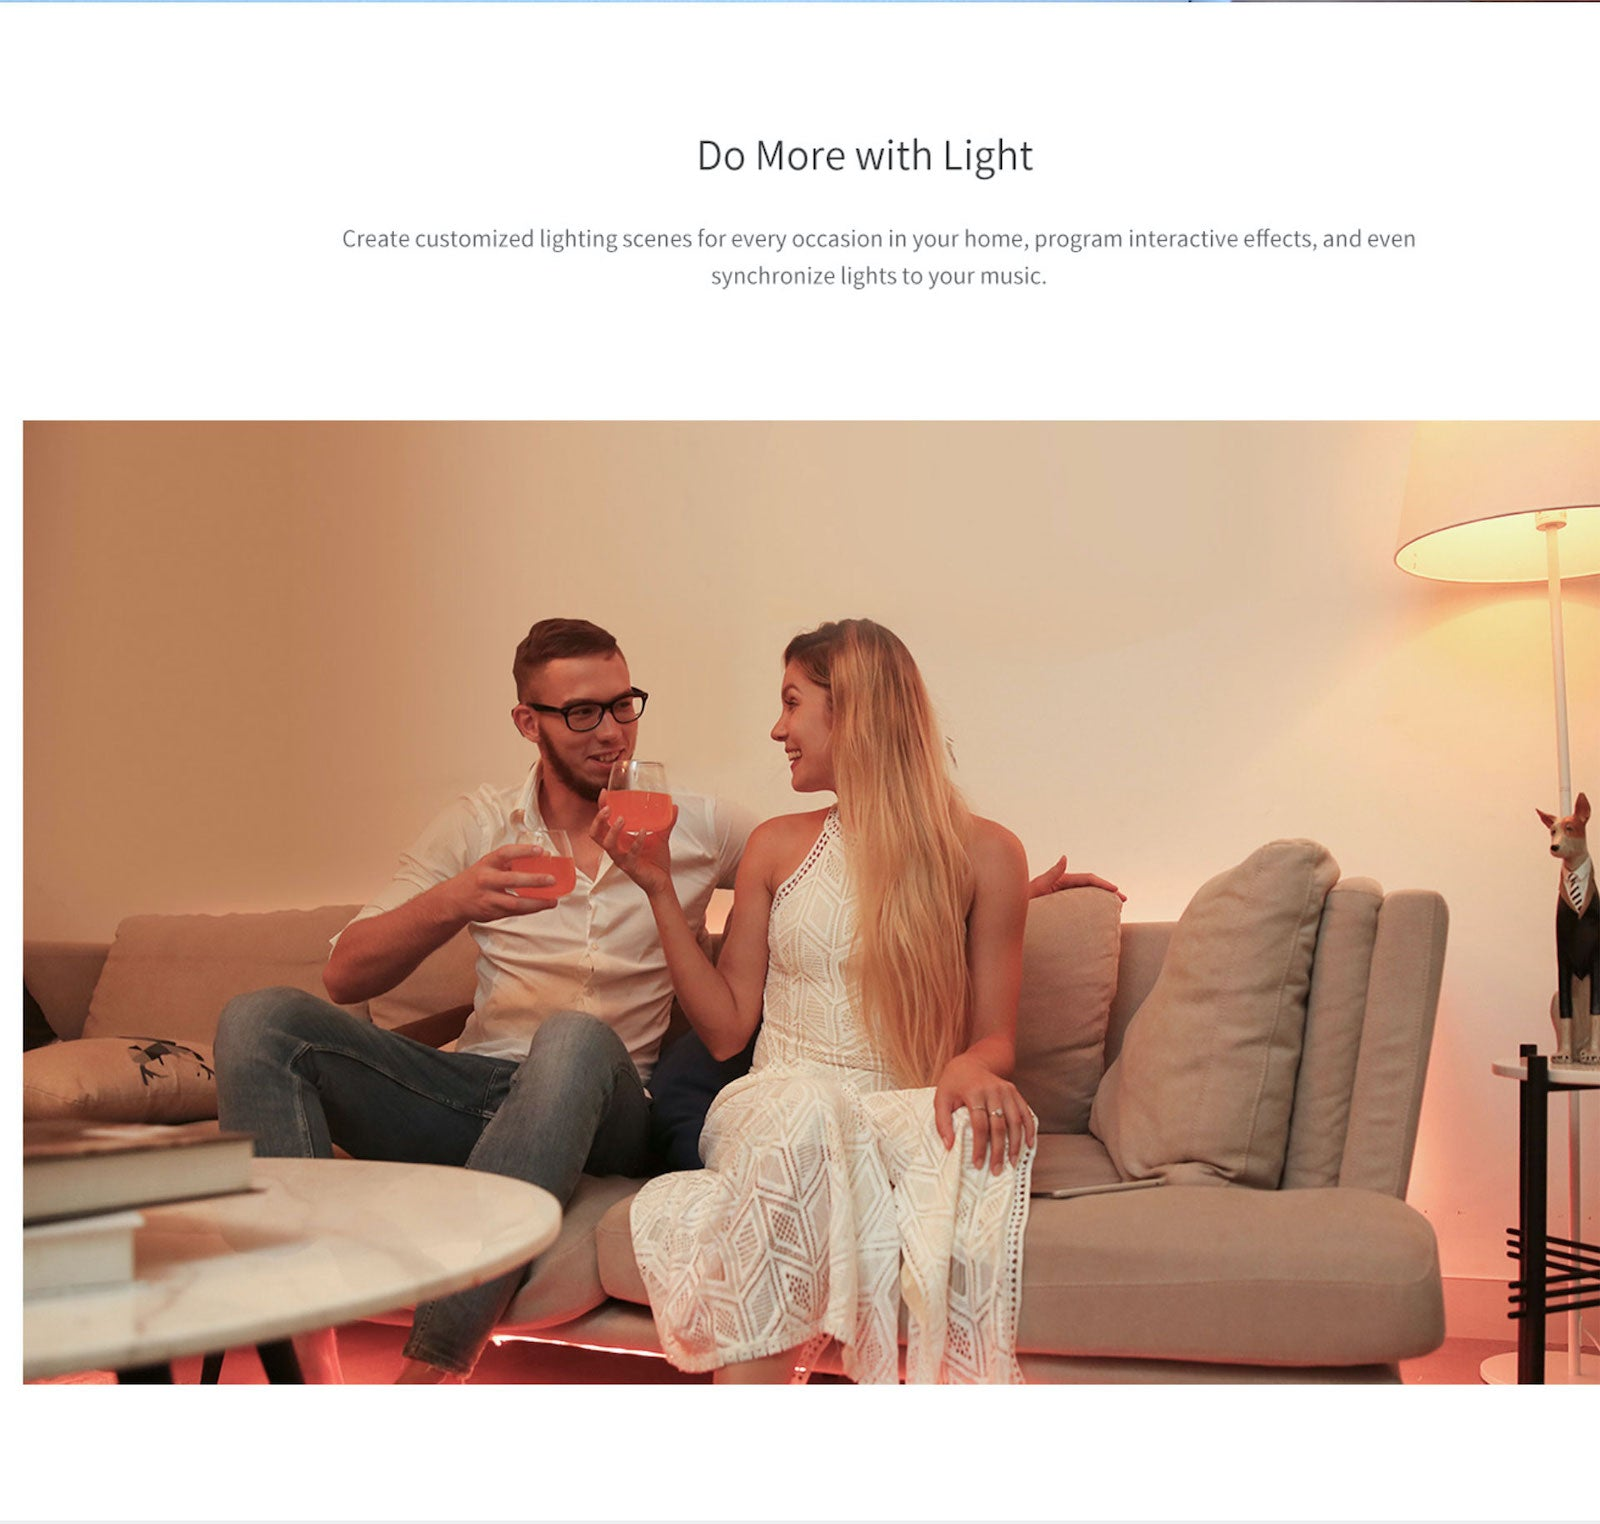 Yeelight Smart Remote Control Extendable Light Strip RGB Color Change Flexible Dimmable Bedroom Cabinet Tape Lightstrip Homekit Alexa Assistant